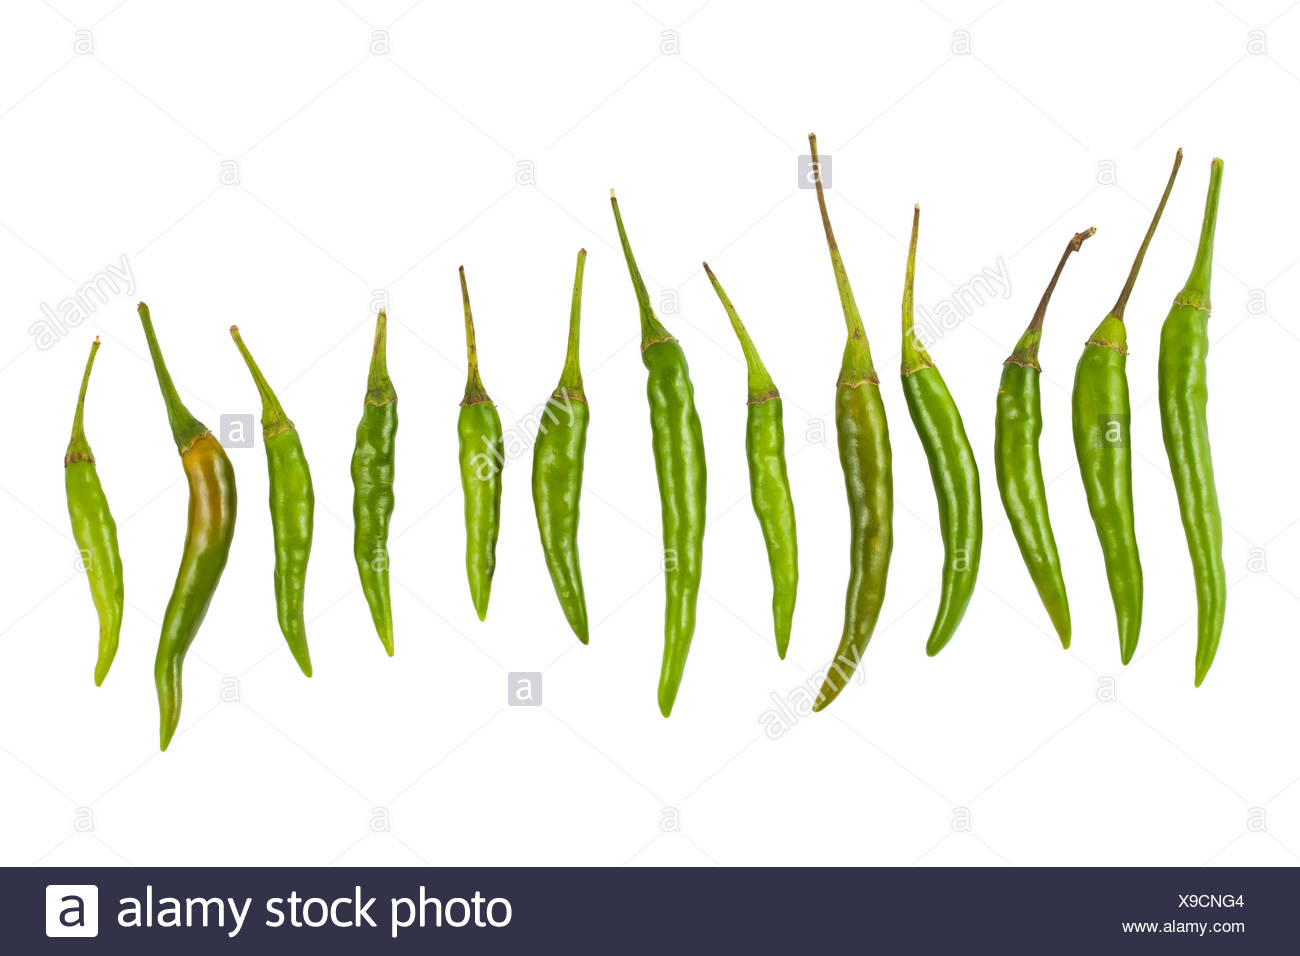 hot green chili peppers - Stock Image